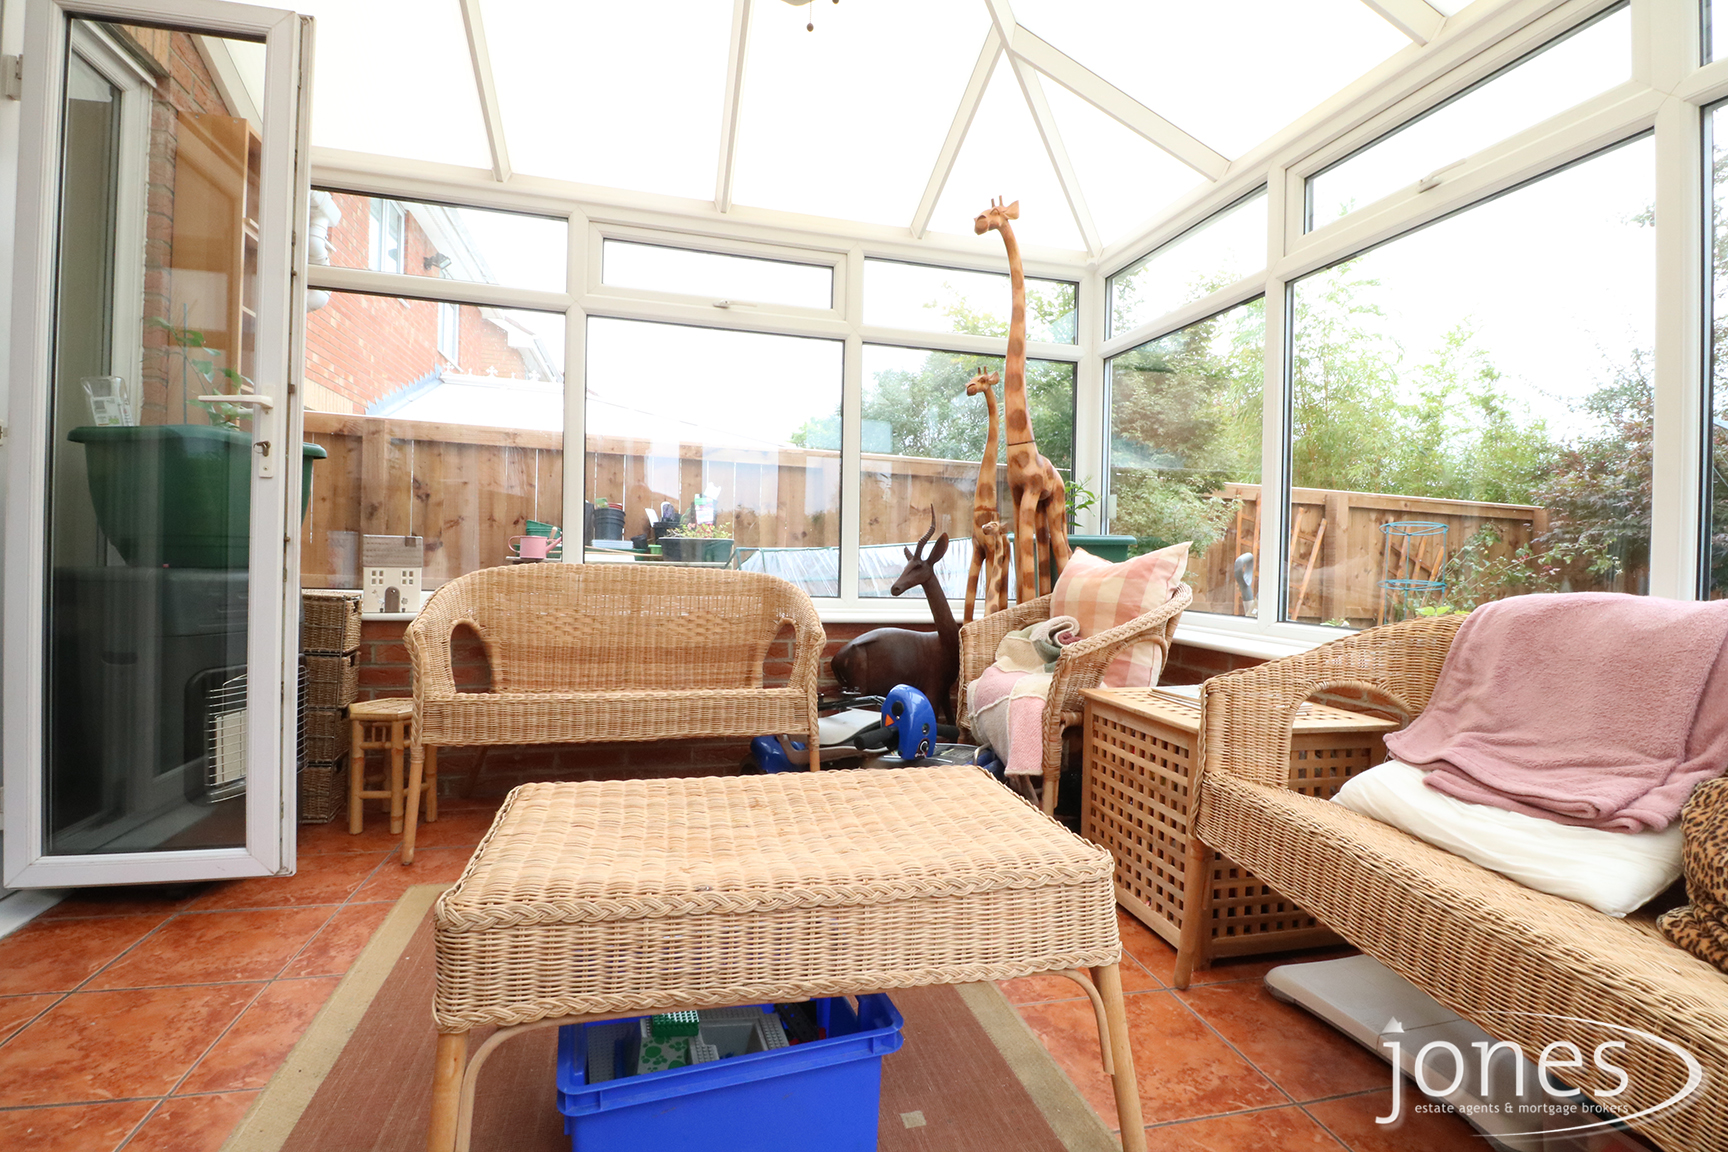 Home for Sale Let - Photo 08 West End Way , Low Hartburn,Stockton on Tees,TS18 3UA